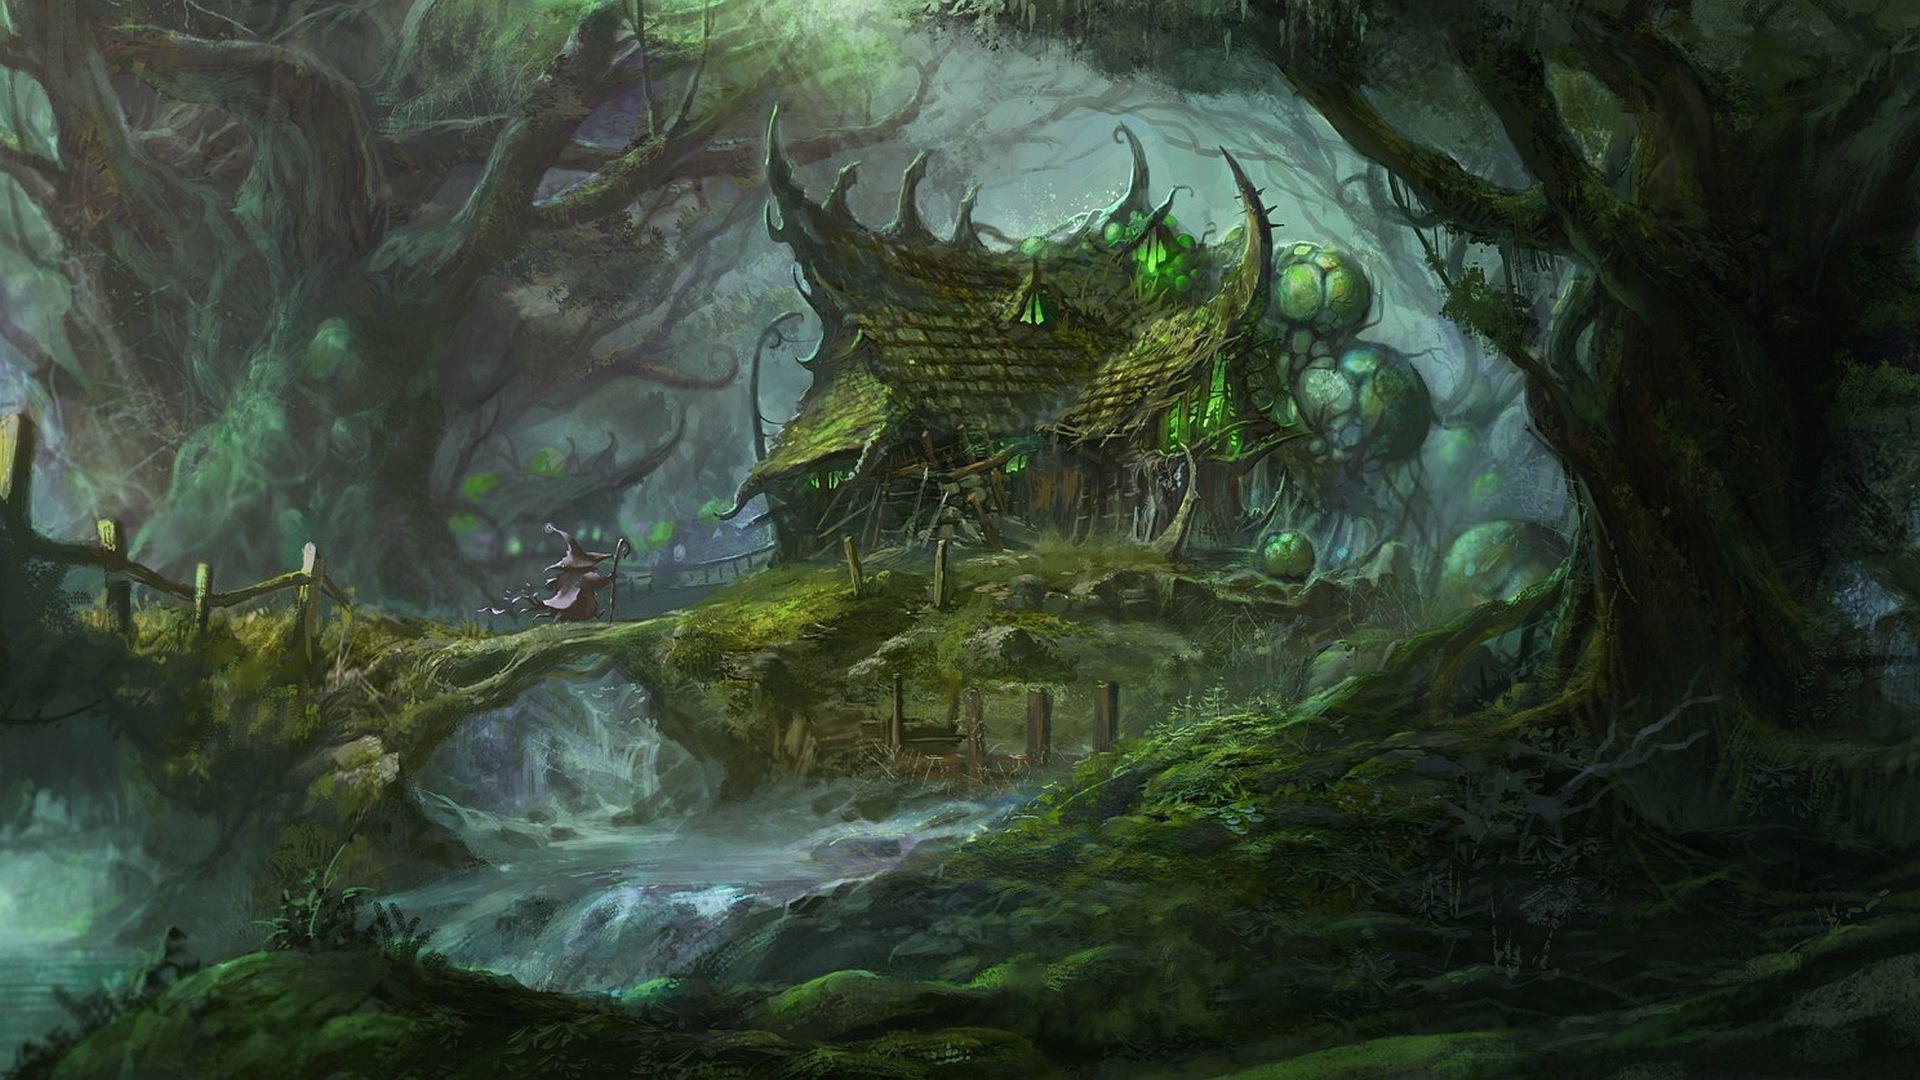 Fantasy Forest Wallpaper  D&ampD Cities/Towns/Temples